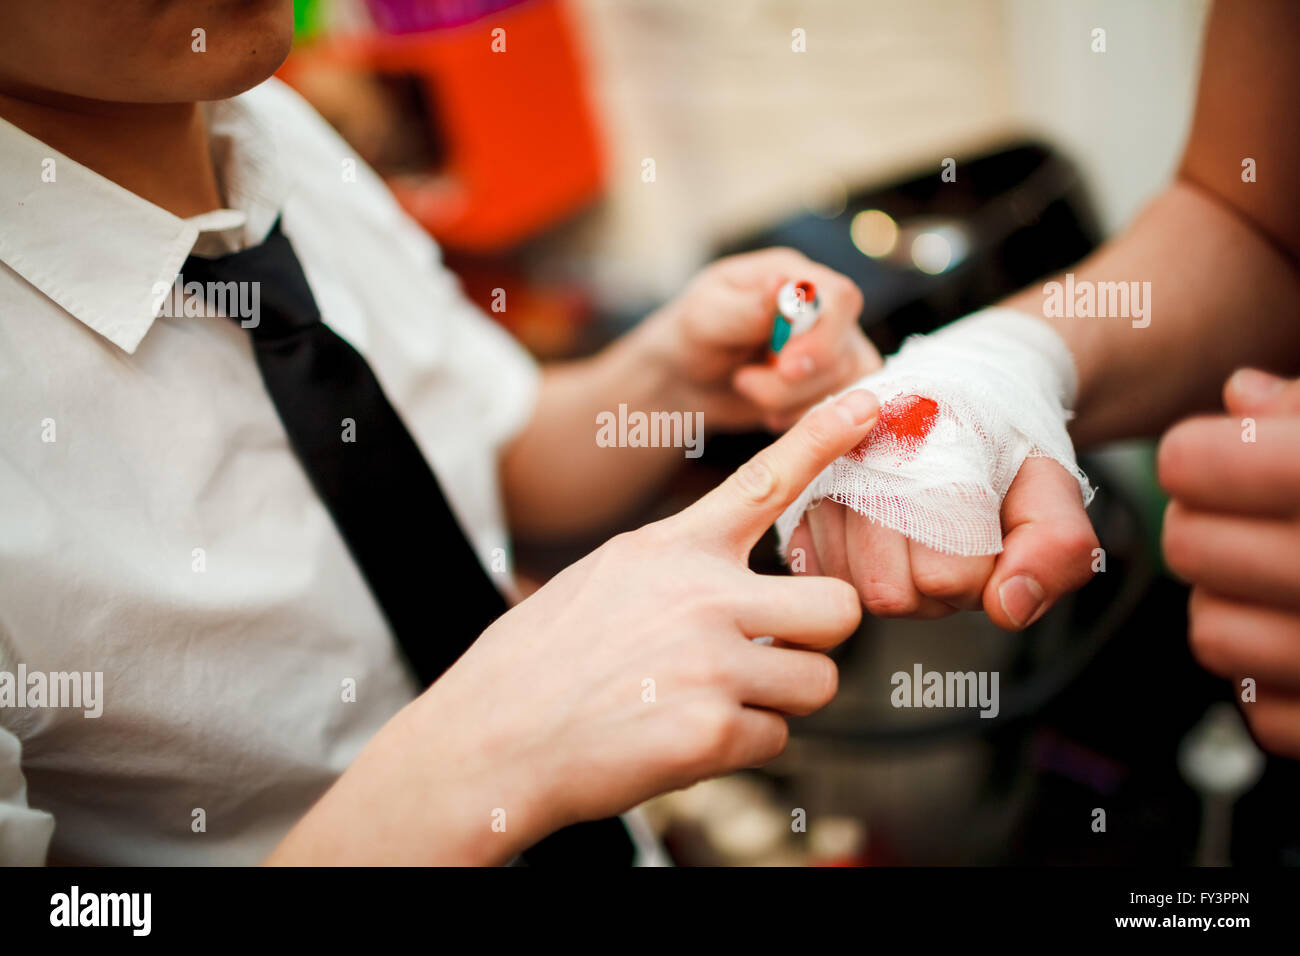 Man puts greasepaint on his fists bandage, fight club. - Stock Image